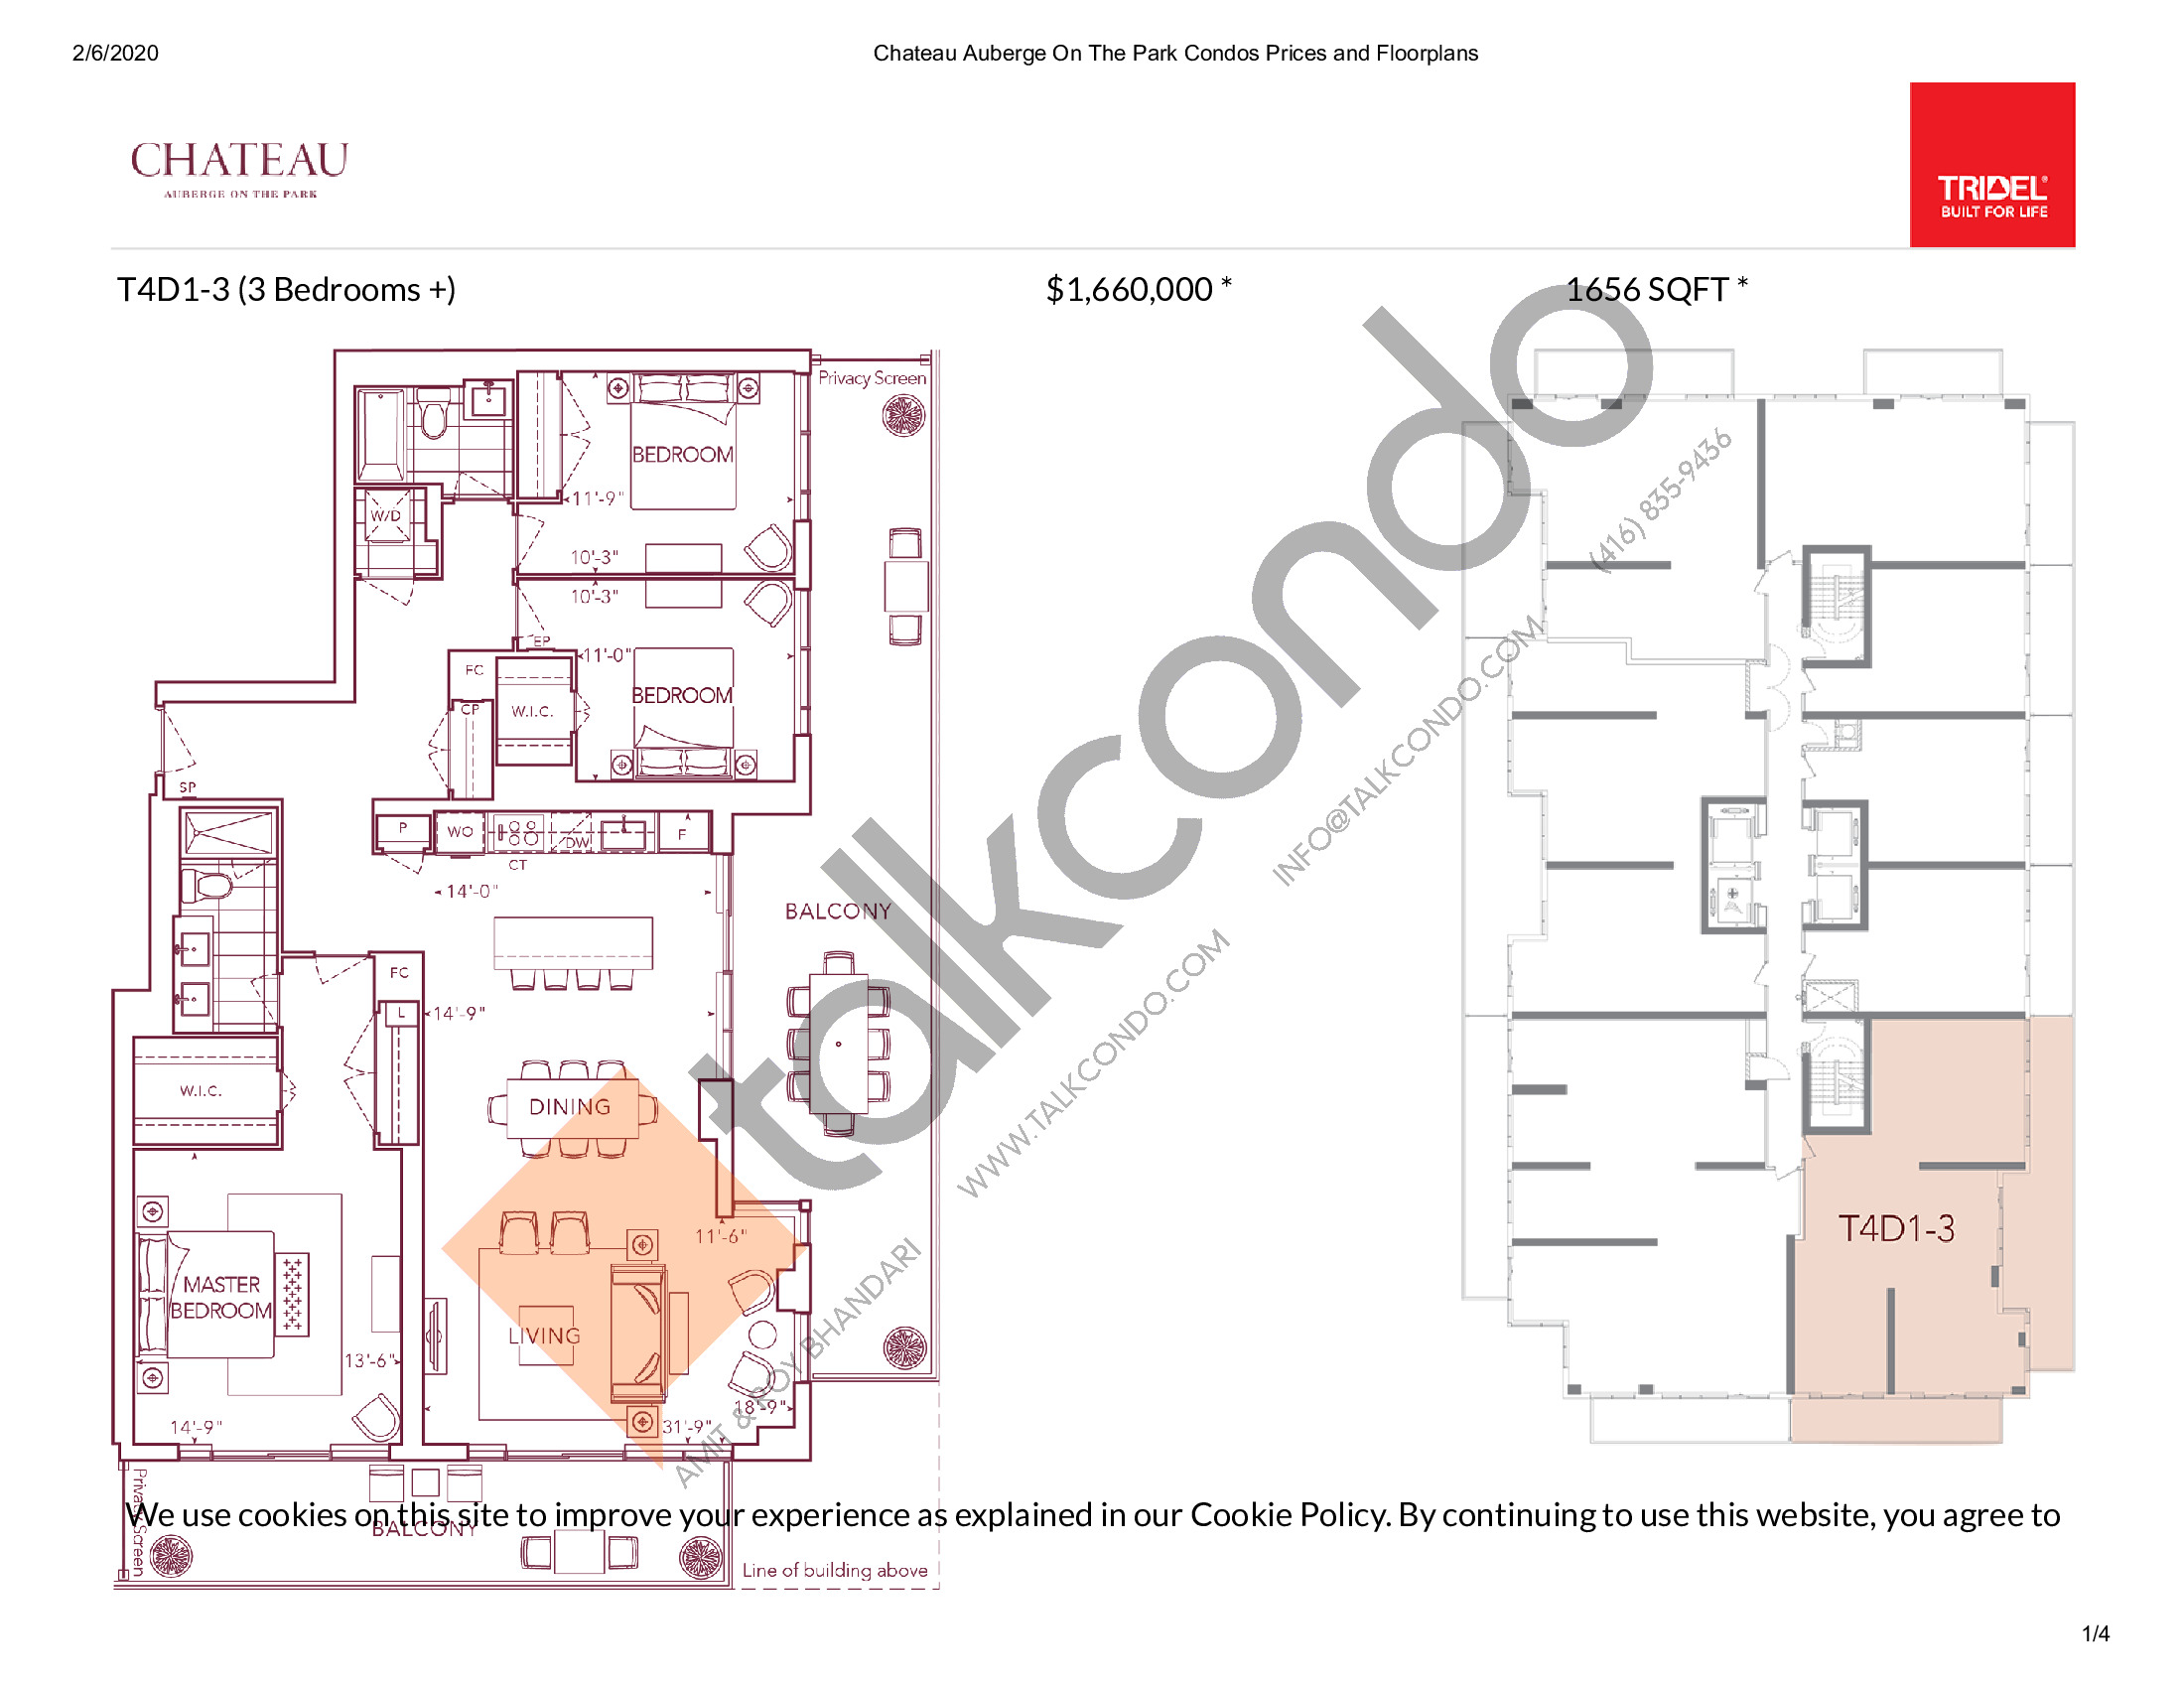 T4D1-3 Floor Plan at Chateau Auberge On The Park Condos - 1656 sq.ft